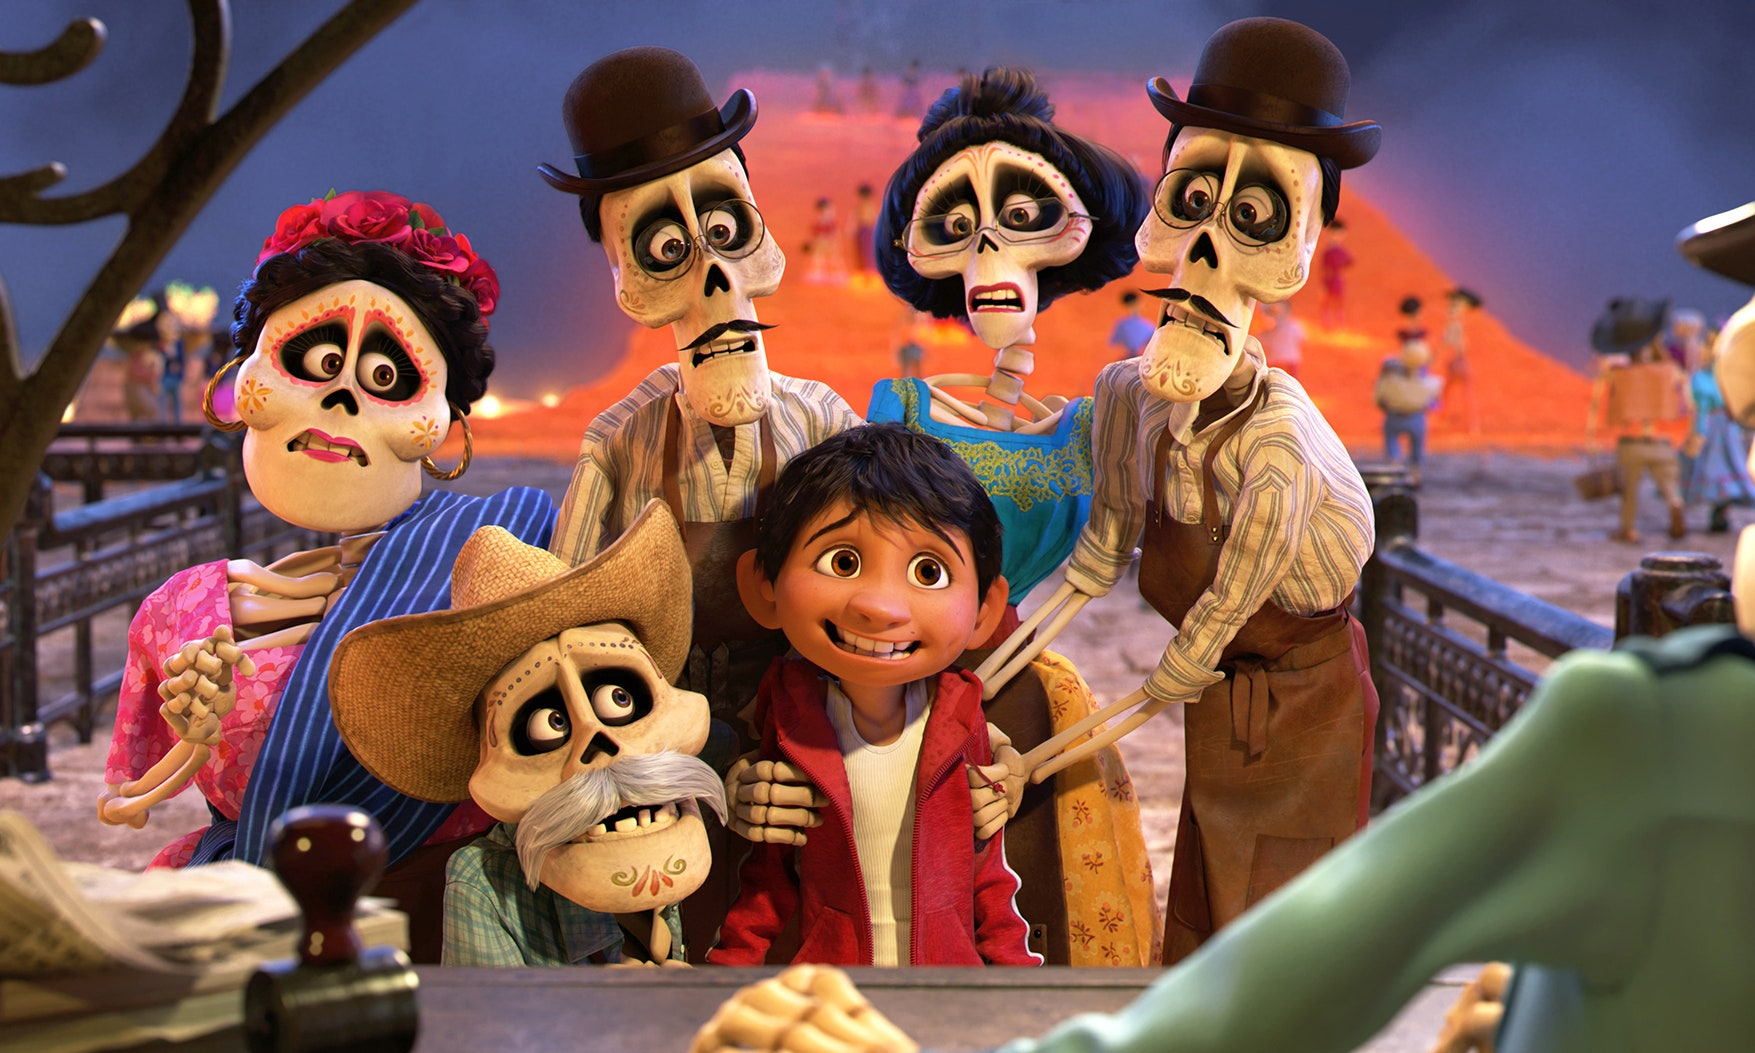 coco Talking to Children About Death, Guide and Resources